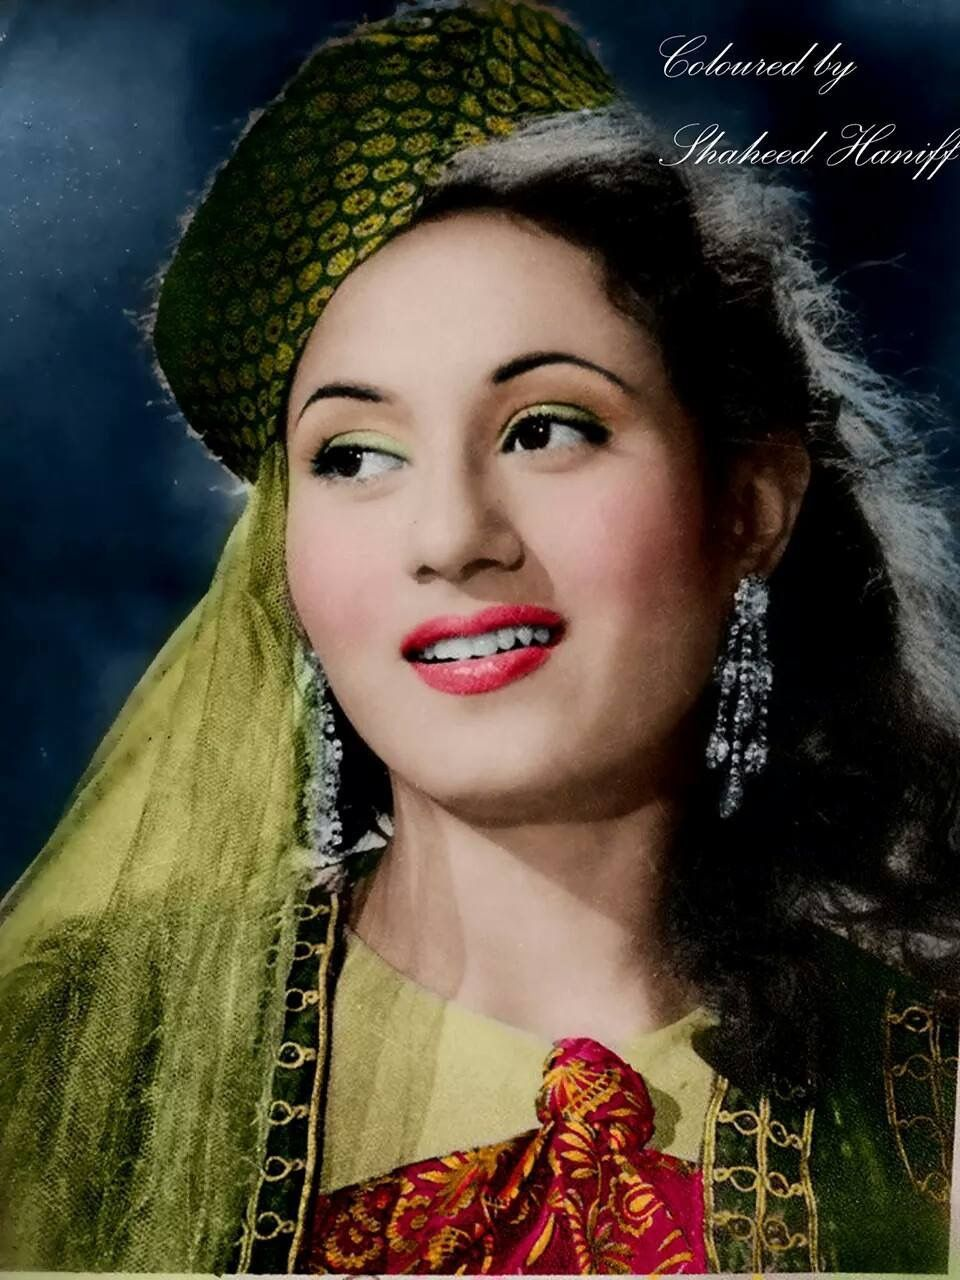 960x1280 Pin on Vintage bollywood